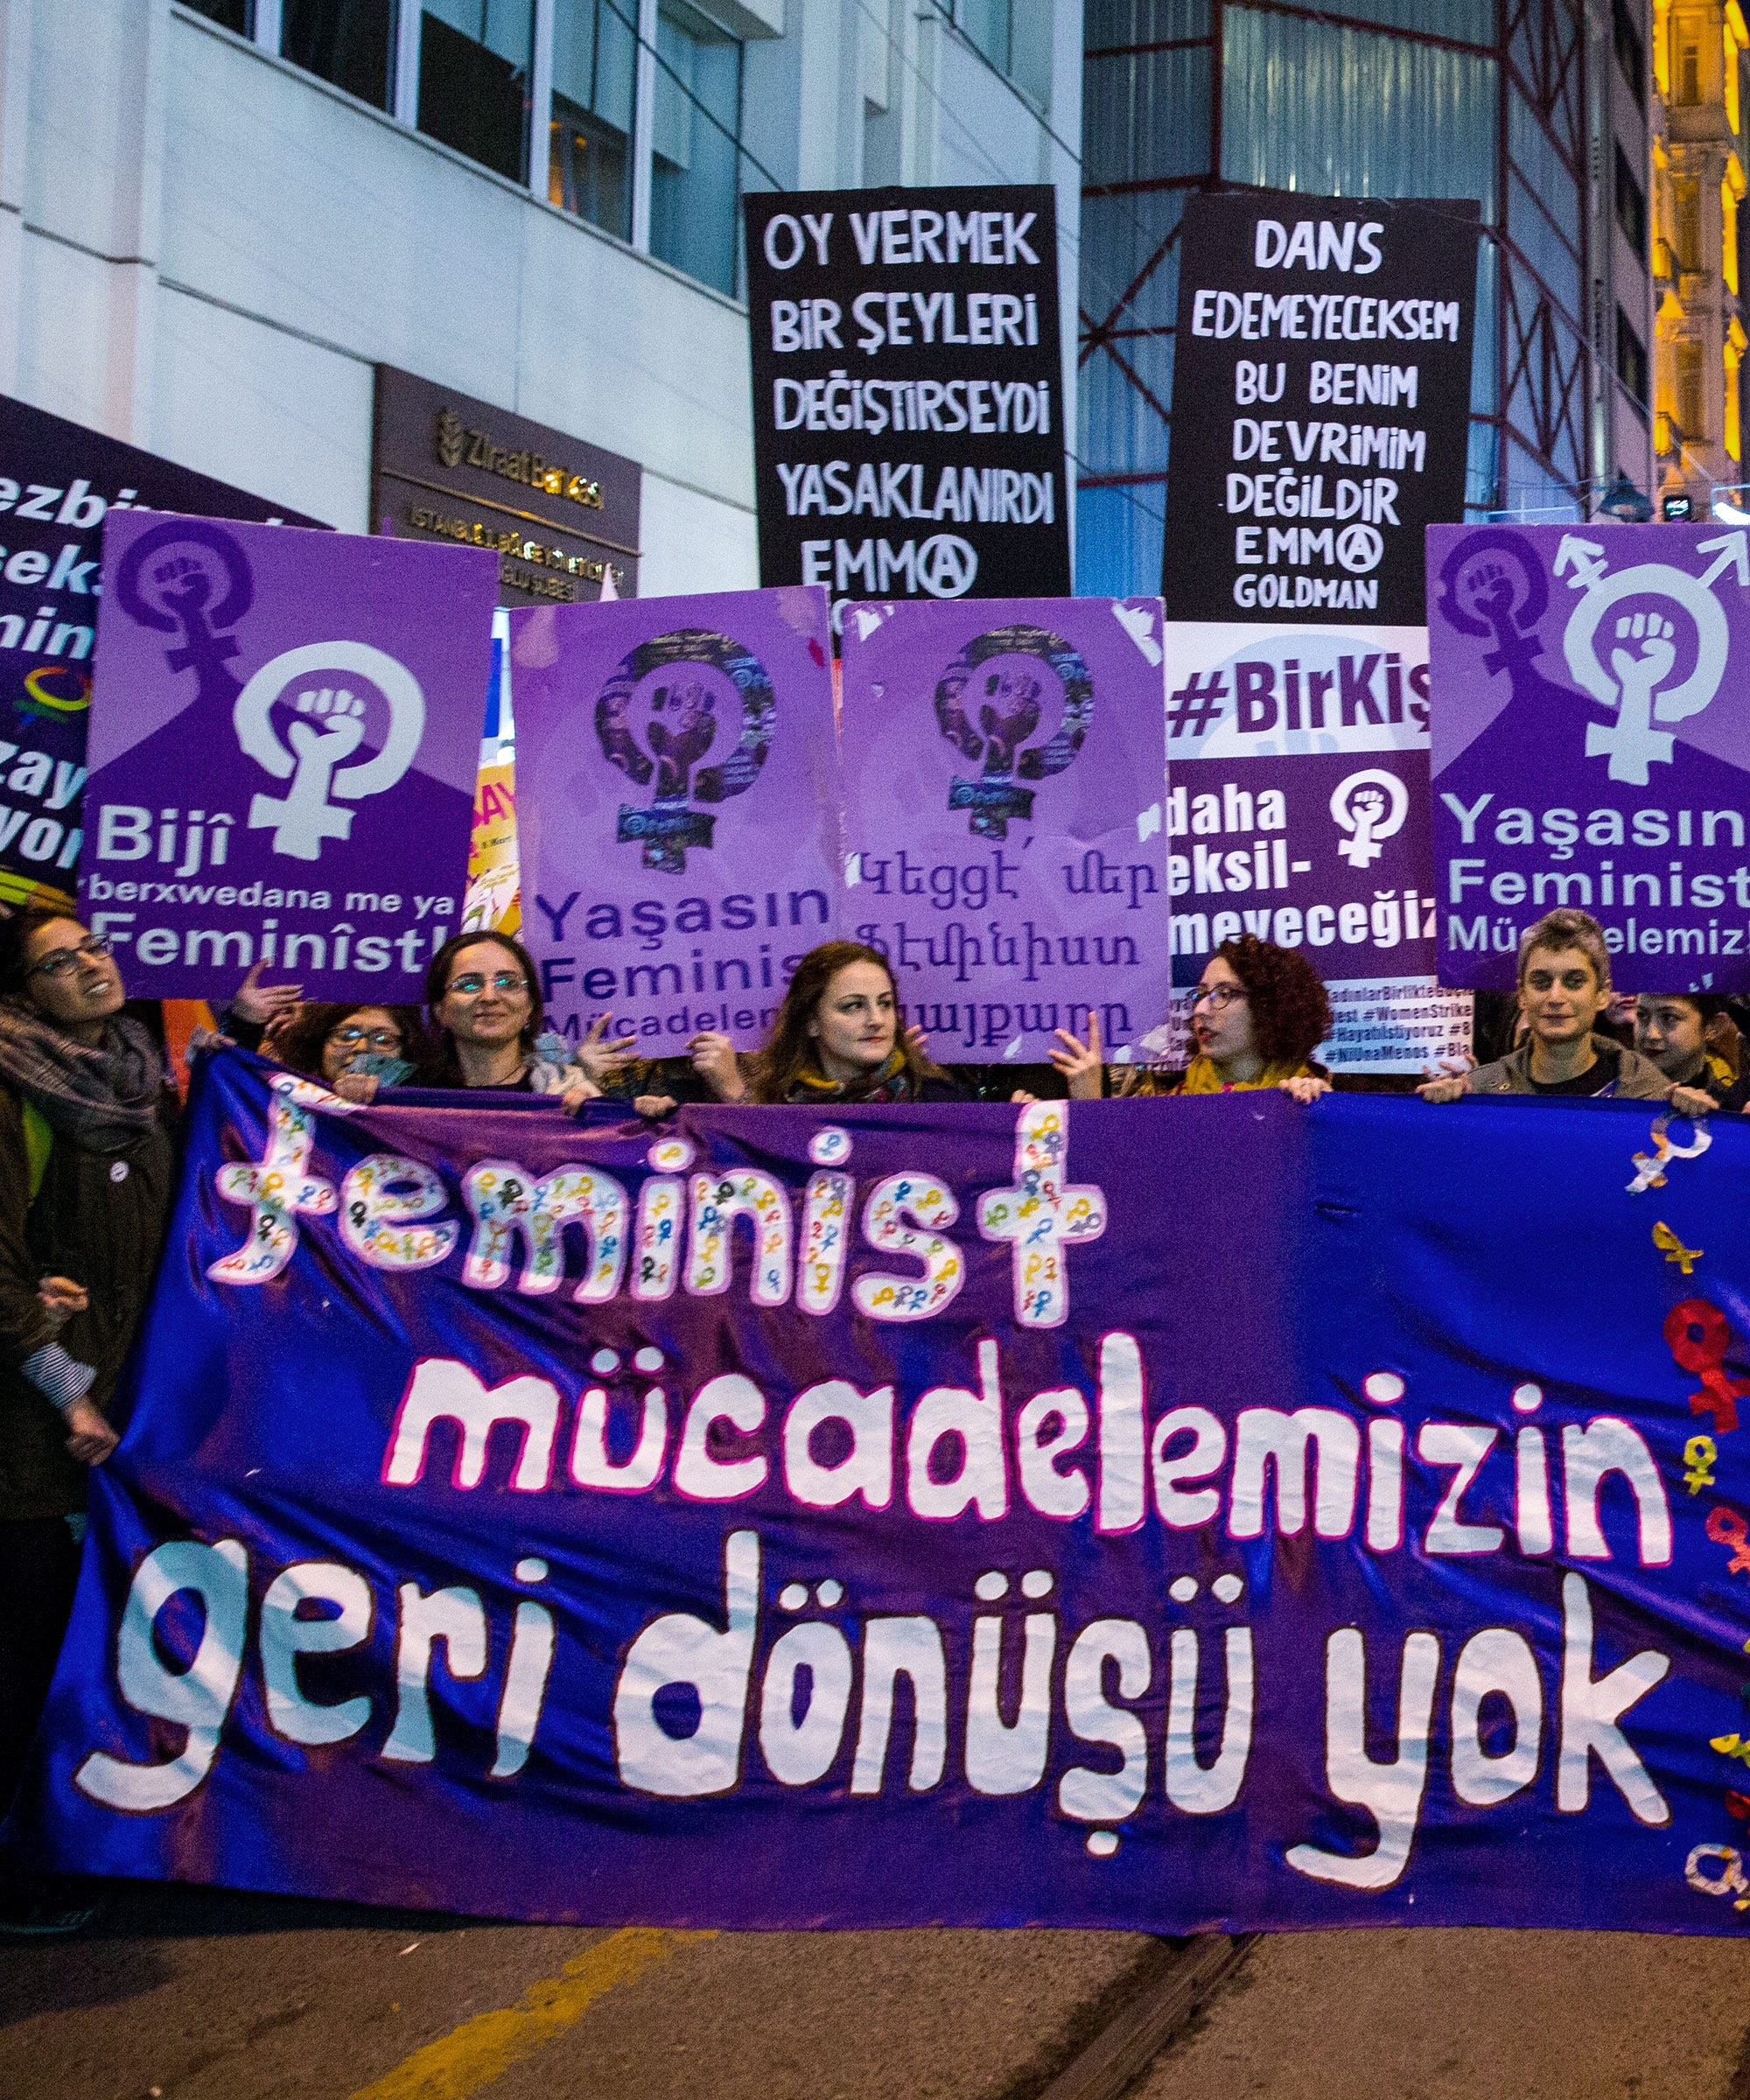 Authoritarian Governments Are Rolling Back Women's Rights. These Women Are Turkey's Last Hope